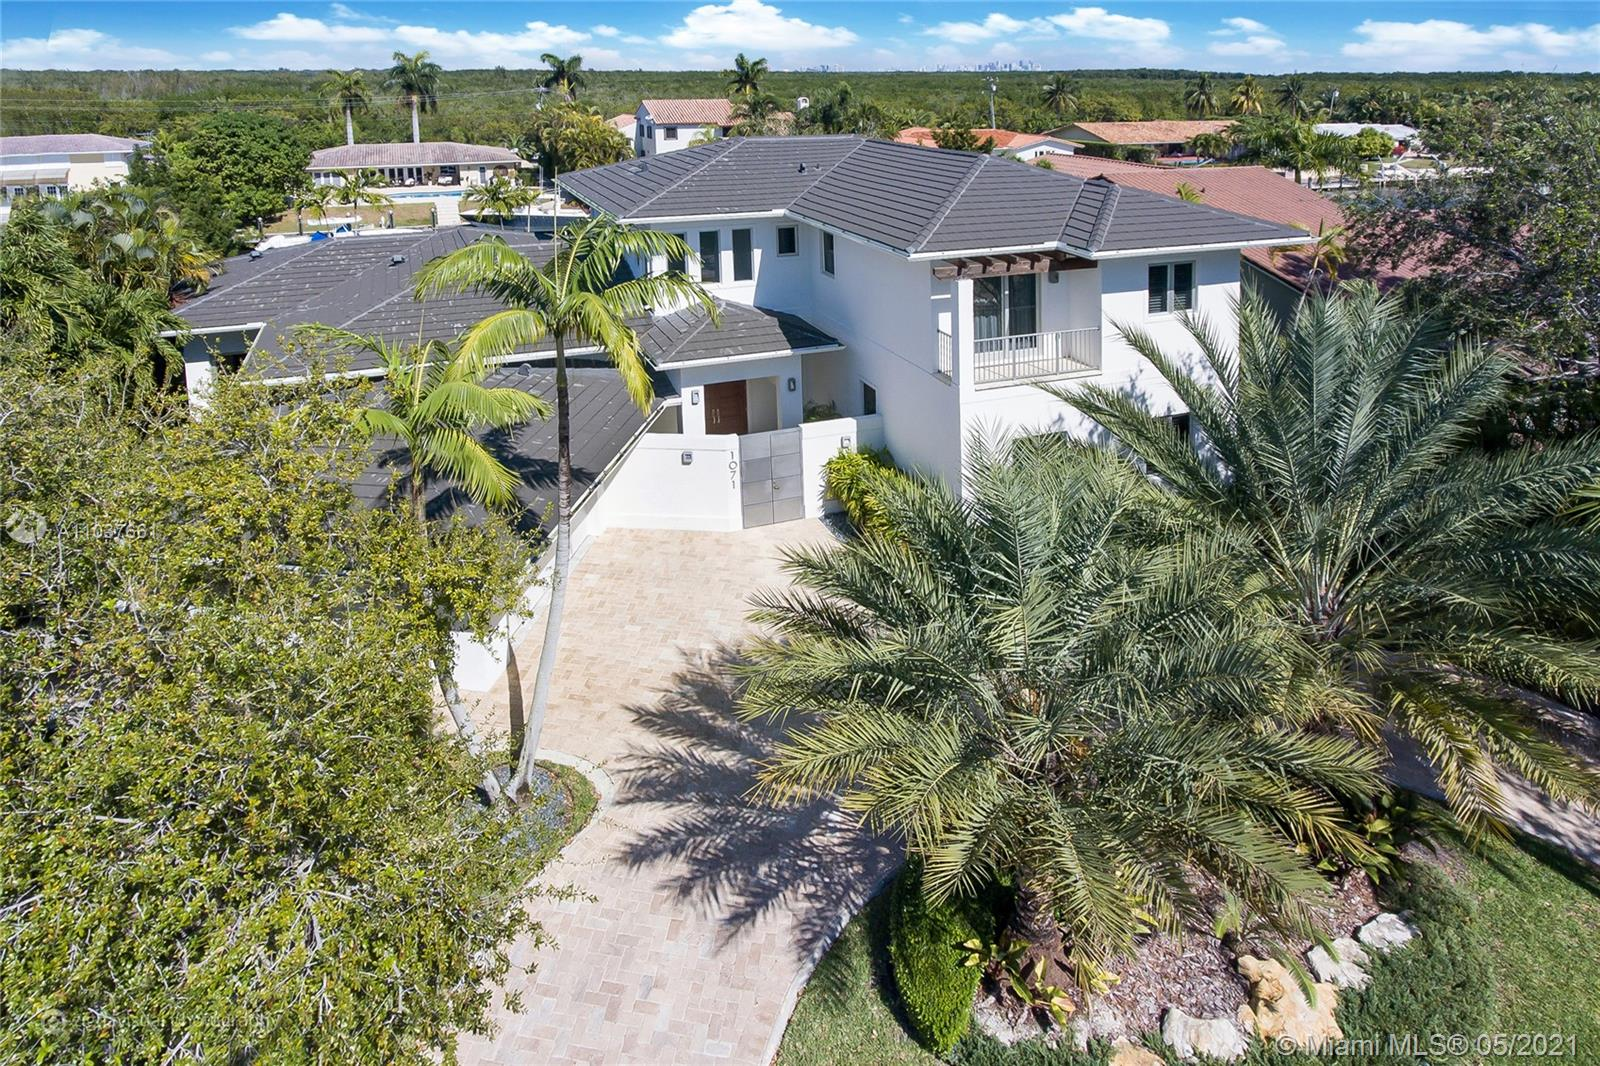 """Boater's dream-completely rebuilt in 2013 contemporary 2-story, gated community """"Gables by the Sea"""". 100ft dock, no bridges to the ocean, 10-12ft ceiling, high-end appliances (Miele, Wolf, Sub-Zero, Gaggenau), ItalKraft kitchen cabinets, gorgeous finishes, maid's quarters, barbeque, heated pool, 2-car garage, plenty of storage, high impact windows, 5 en-suit bedrooms, 7 full bathrooms, den with built-in library, ADT security system, community park."""